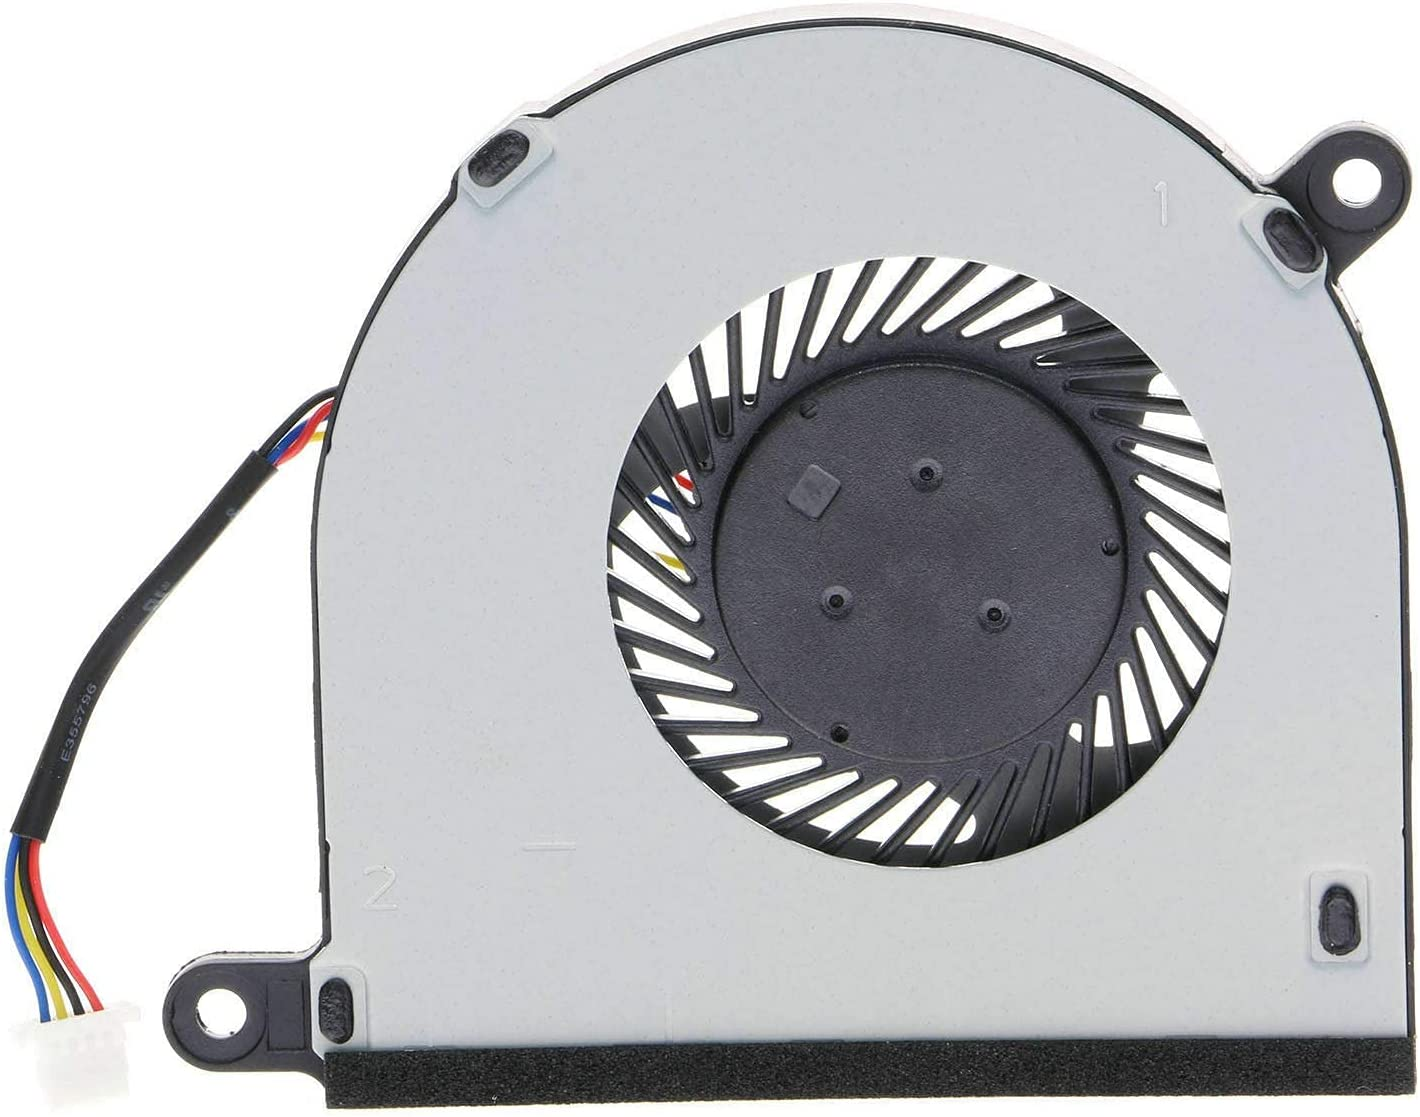 Replacement New CPU Cooling Fan Dell Inspiron High quality new 13-5368 Ranking TOP19 13 for